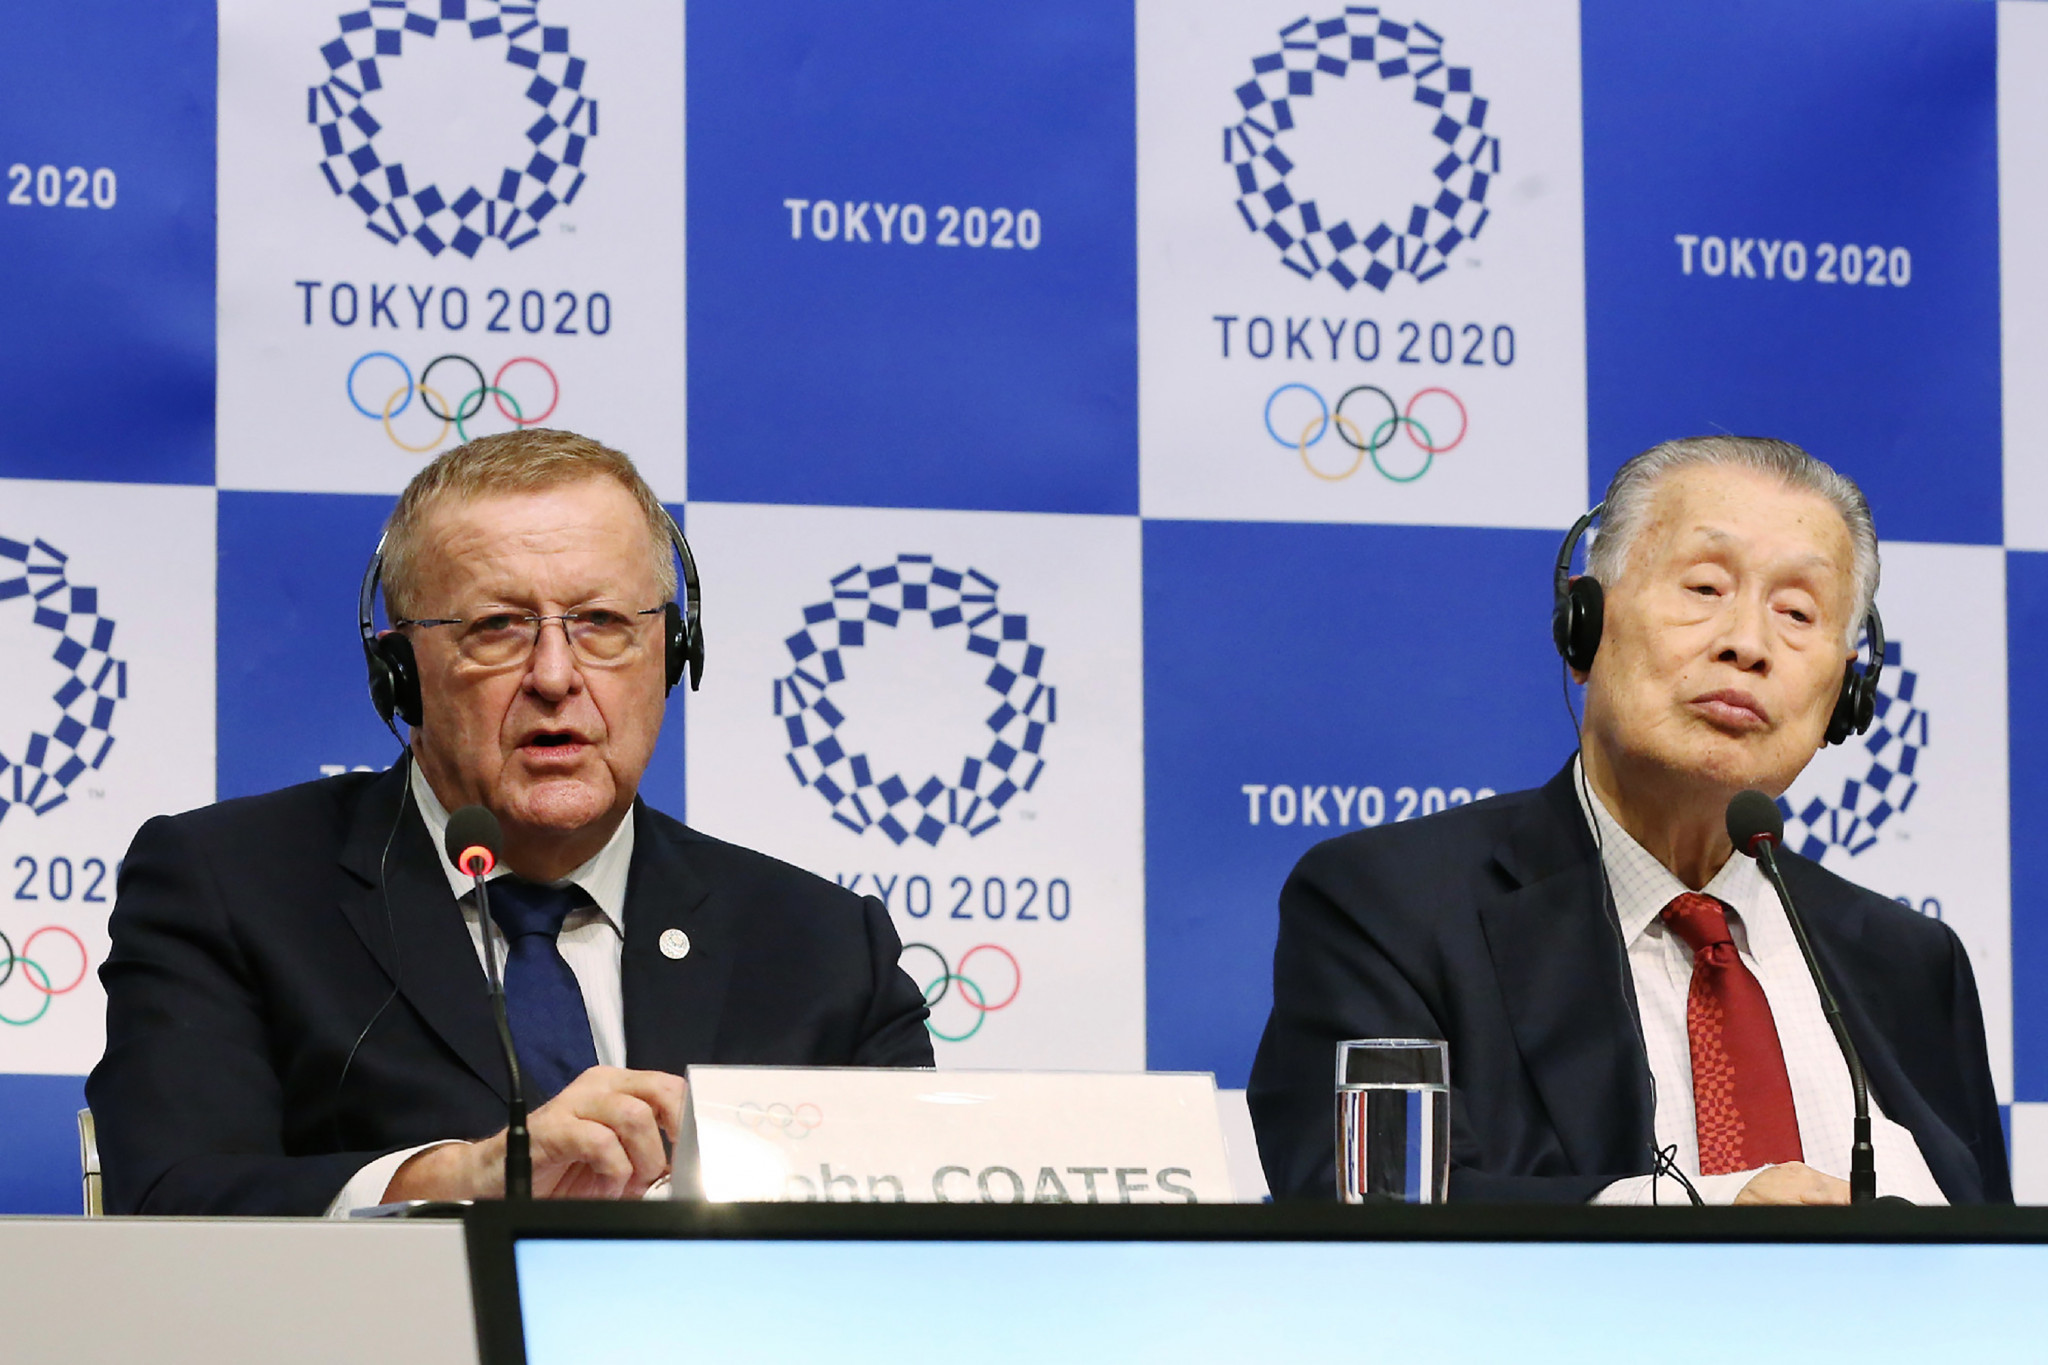 The IOC and Tokyo 2020 lowered expectations of a reduced budget at the Coordination Commission meeting in the Japanese capital earlier this month but promised it would not raise ©Getty Images